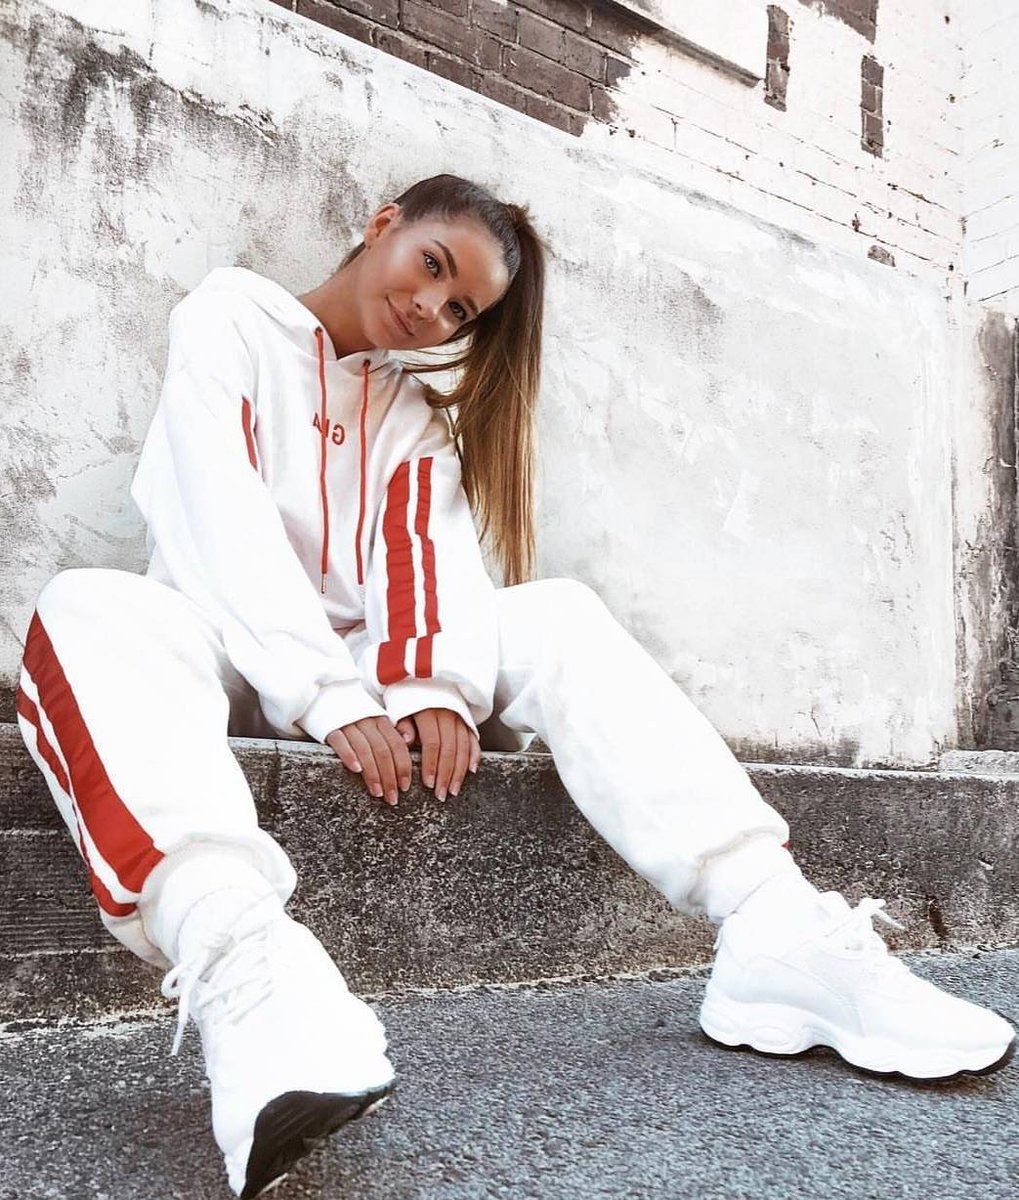 Image for Casual VIBES with our girl lexiesahara 🔥  Style: JAYDEN   SHOP HERE 👉🏽 https://t.co/5GRivEzuru https://t.co/vRnLfYrQgj